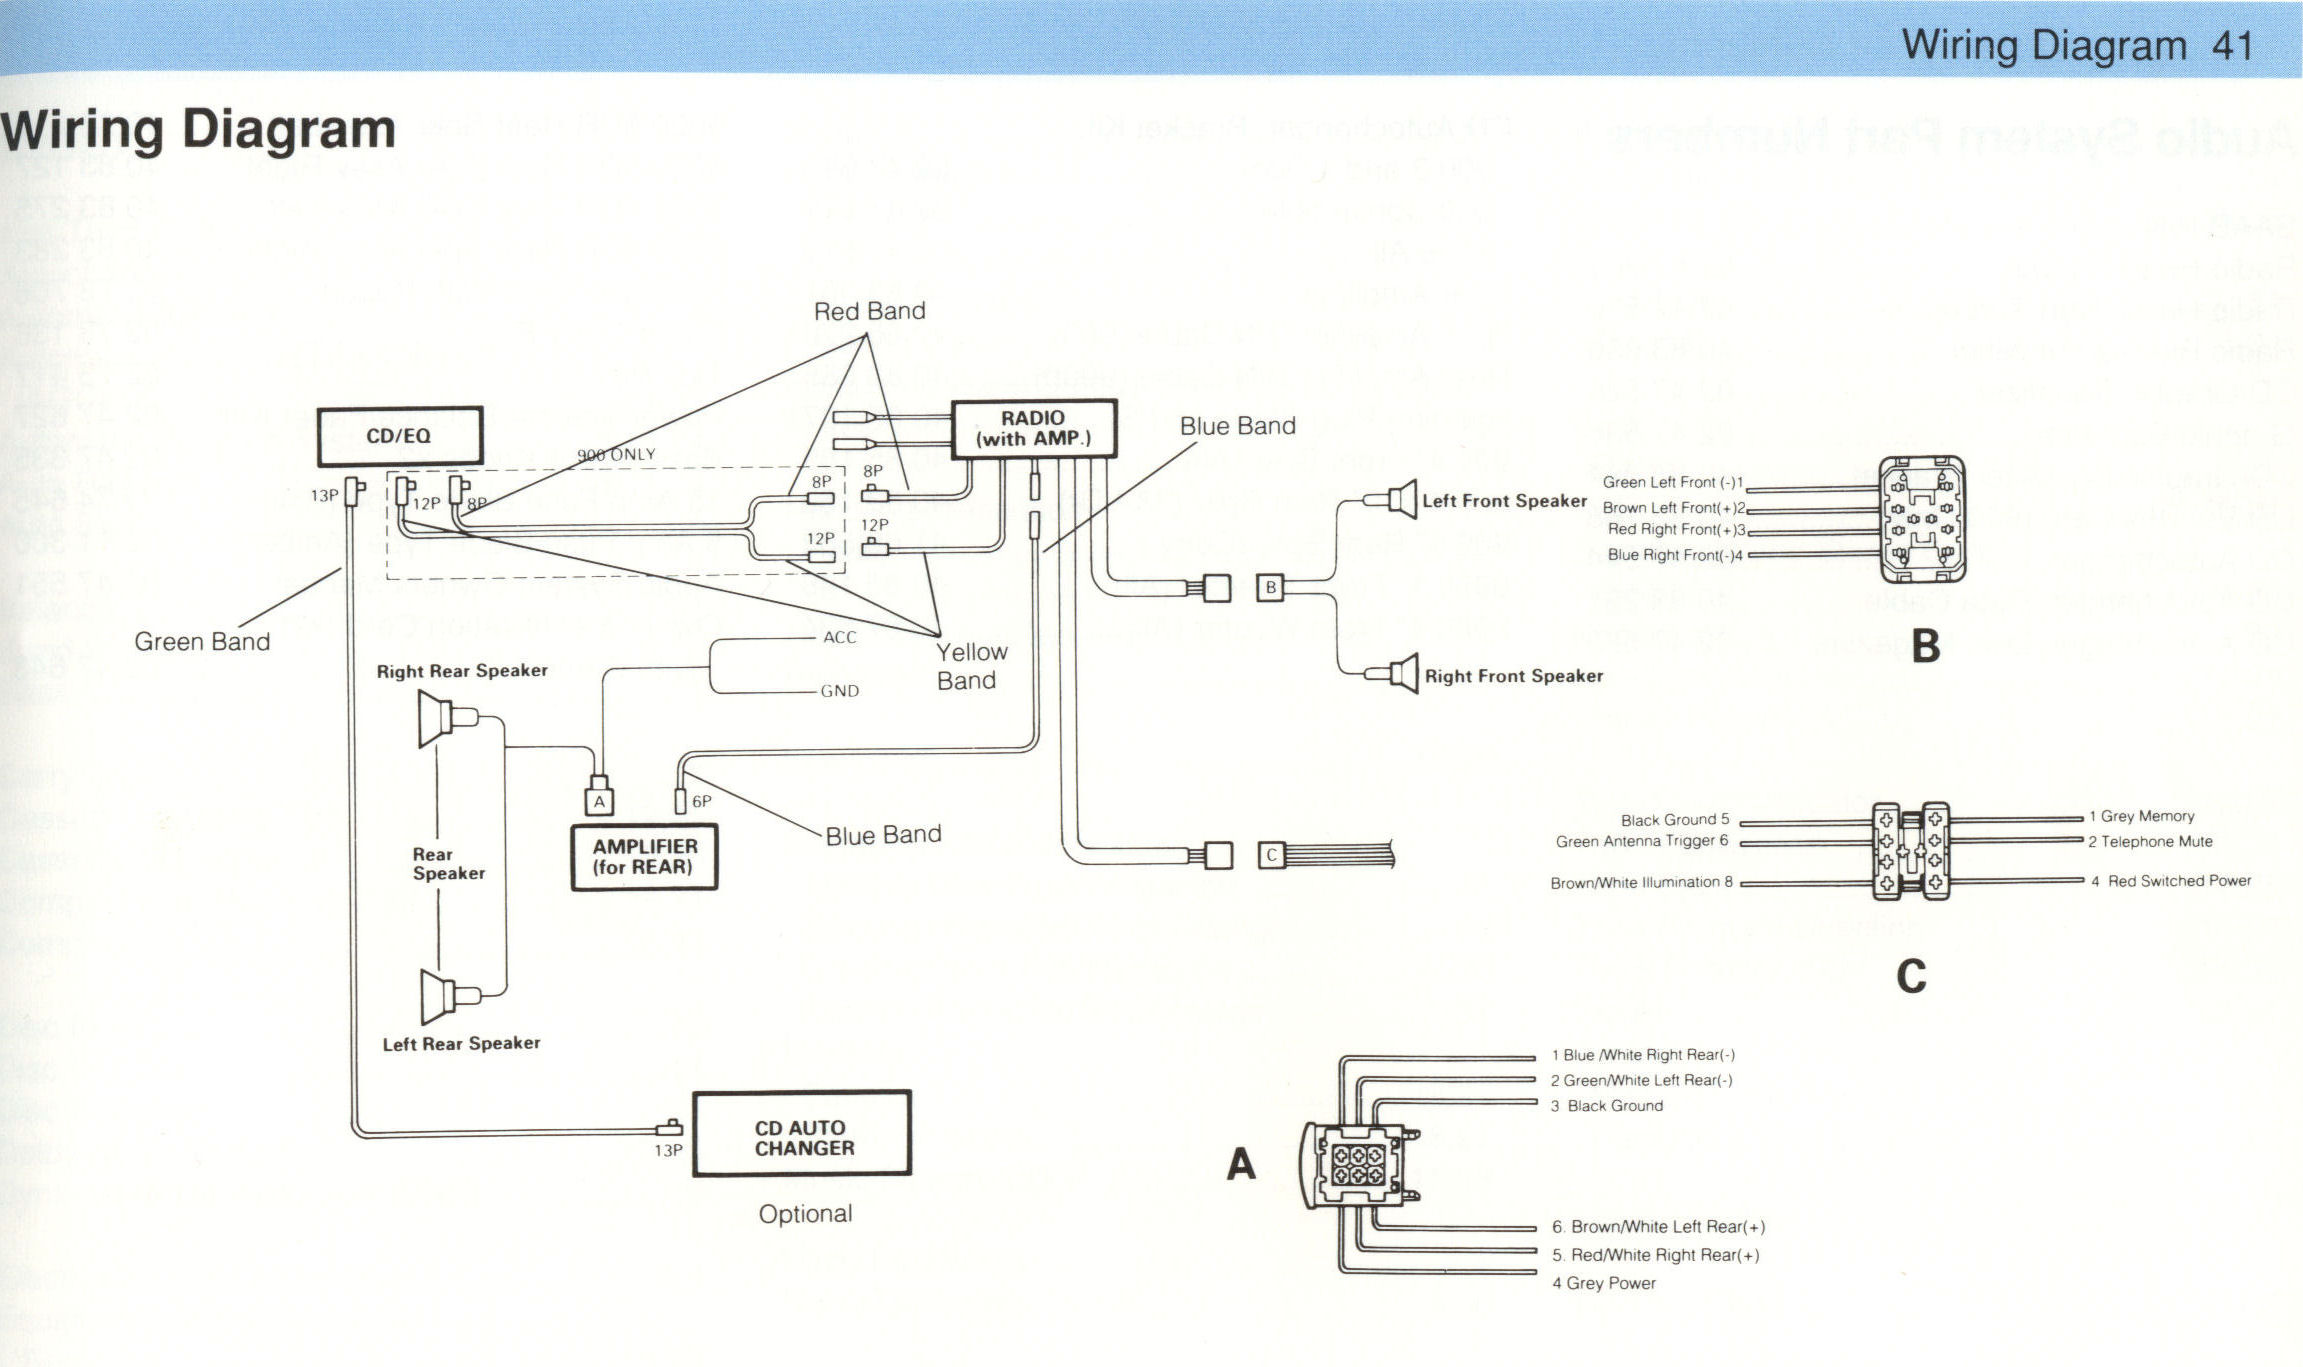 saabclarion_schematics_92 94 clarion cx609 wiring diagram kenwood car cd player wiring \u2022 wiring thermon tc101a wiring diagram at panicattacktreatment.co